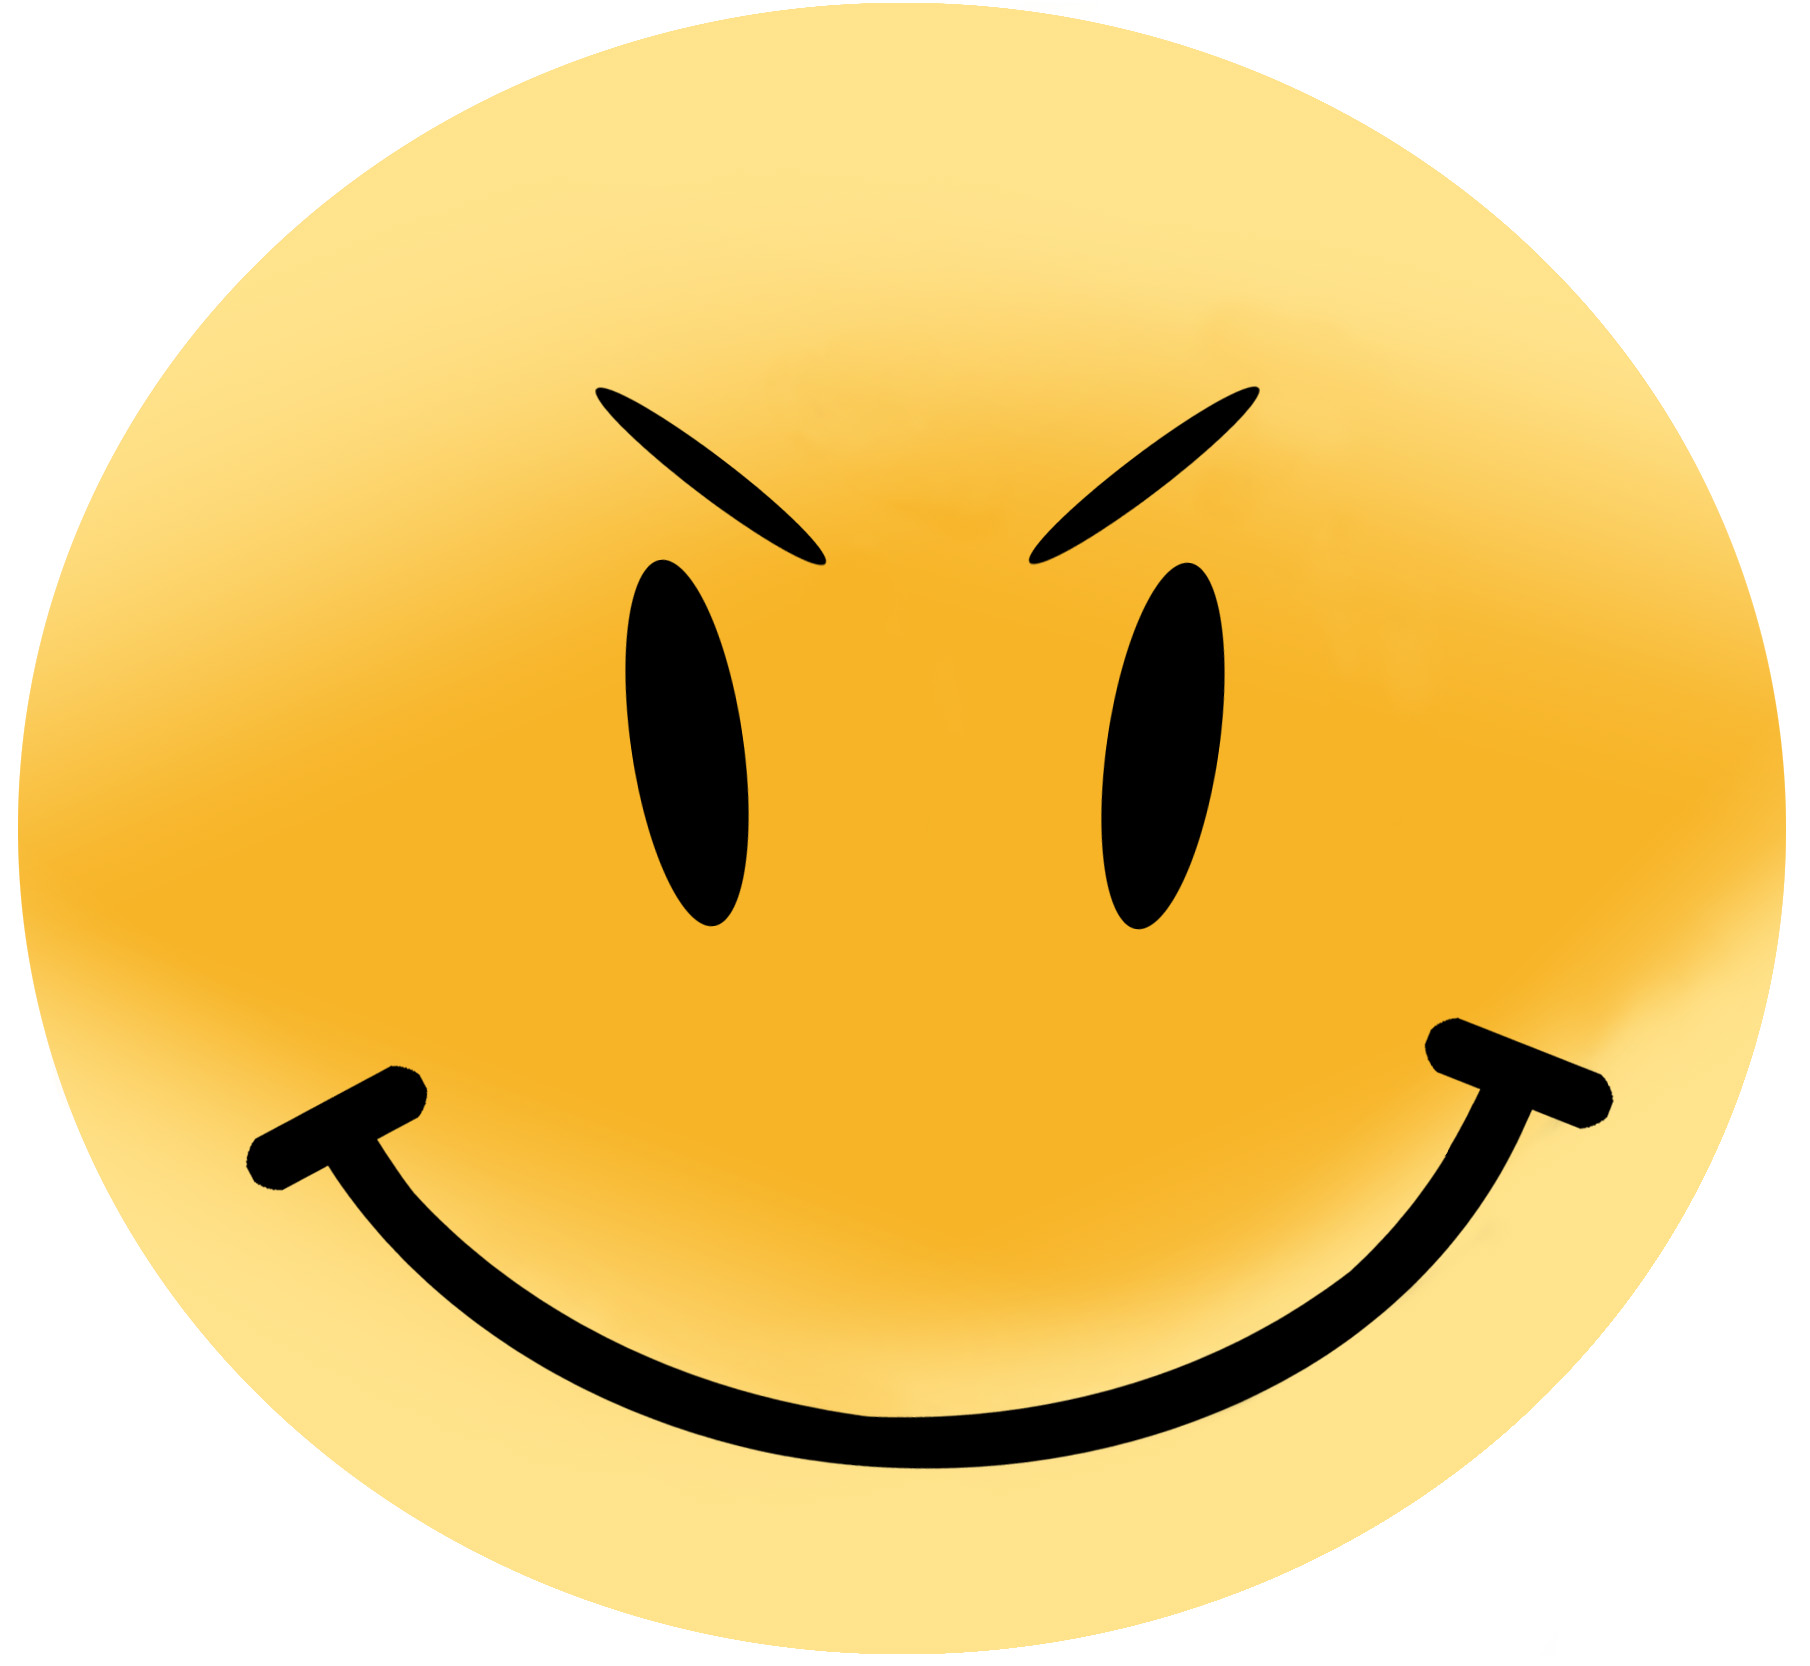 High Res Evil Smiley Face White Background  1810x1666